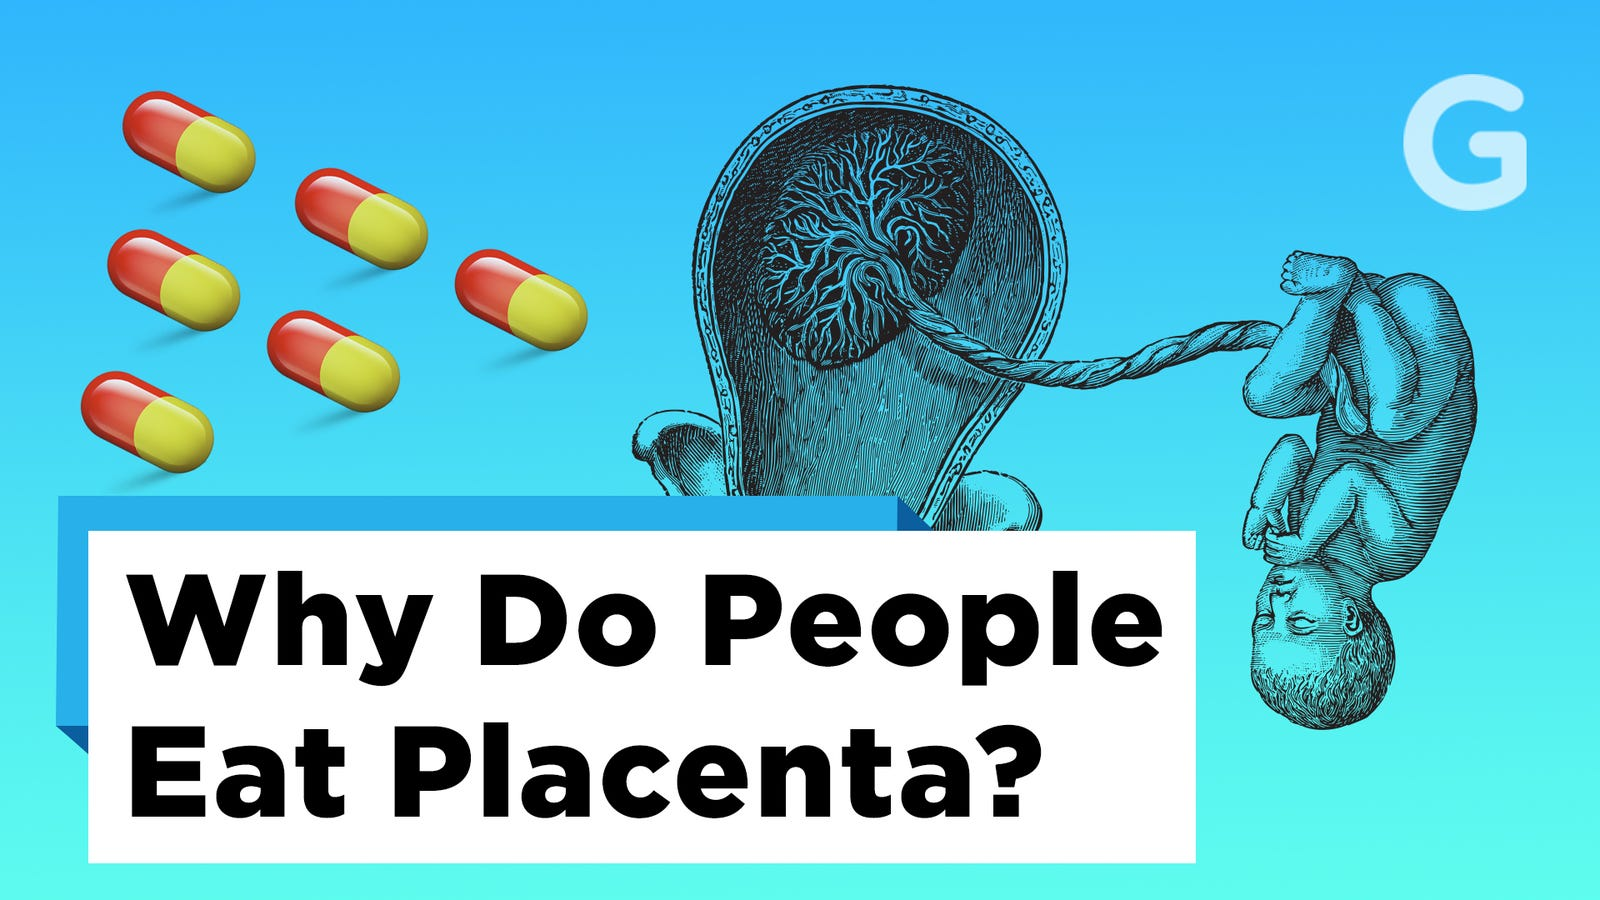 Here's The Truth About Eating Placenta